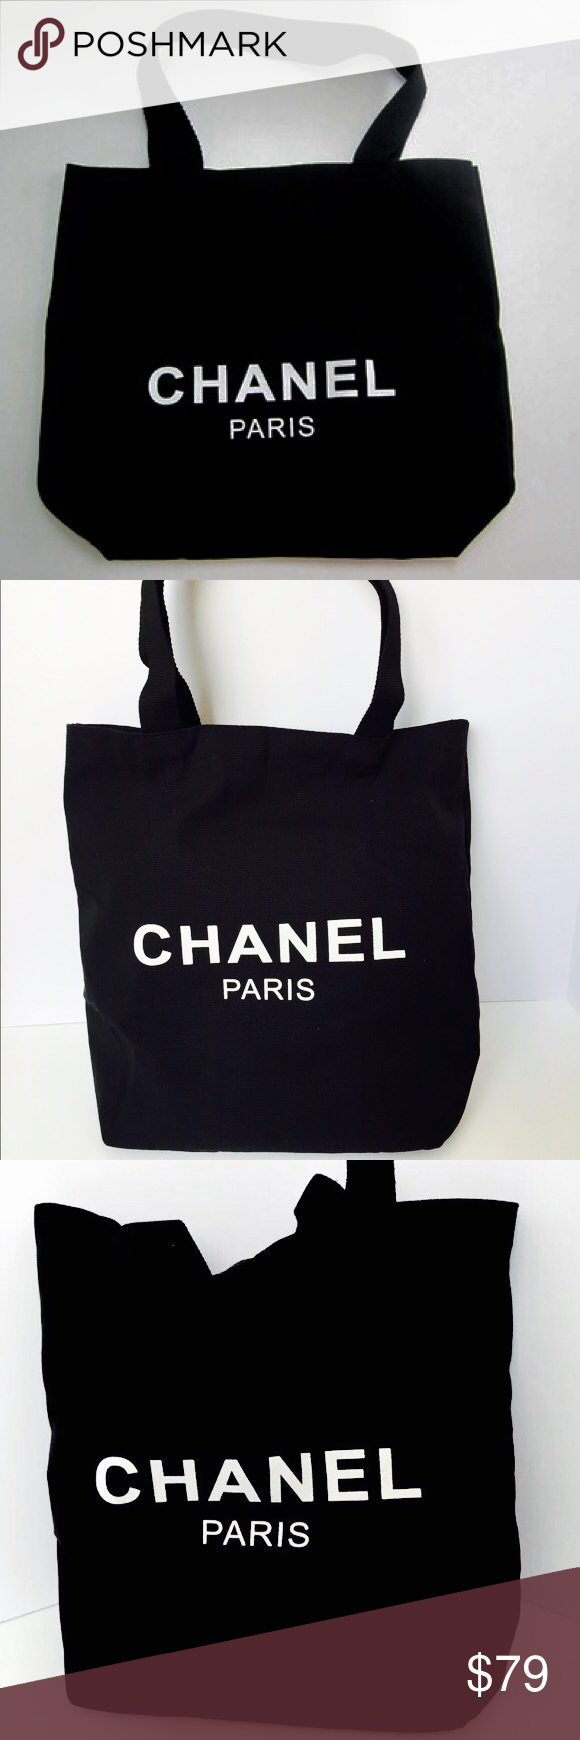 a6c1ab586a4c Chanel Fabric Tote VIP Gift NEW. Chanel VIP gift. Material: fabric. NO  TRADES. CHANEL Bags Totes